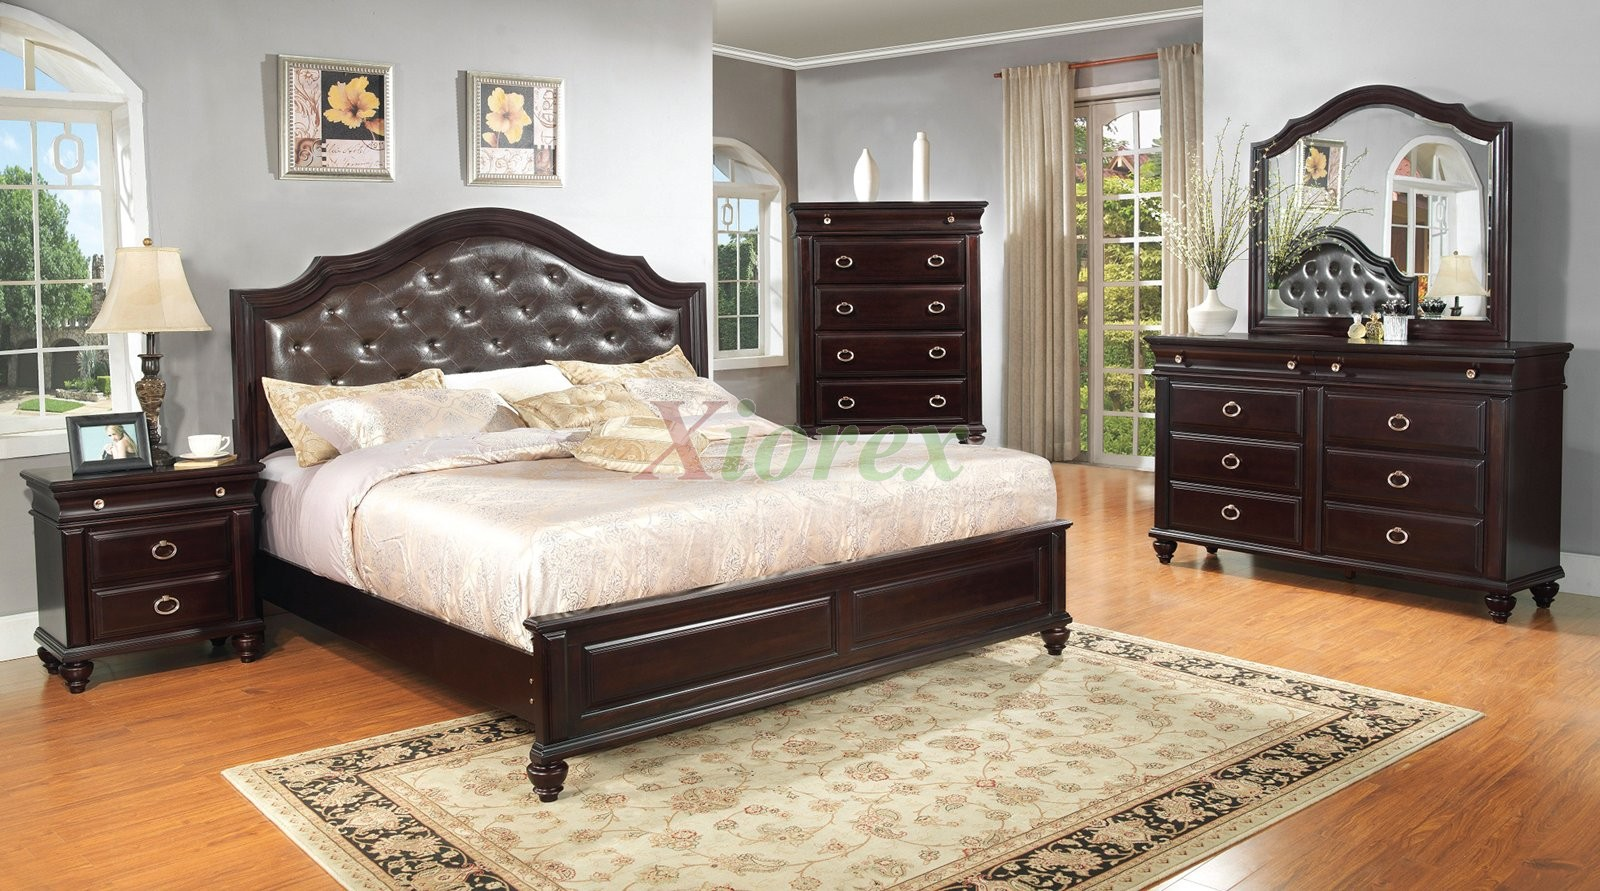 Captivating Platform Bedroom Furniture Set With Leather Headboard 146 | Xiorex